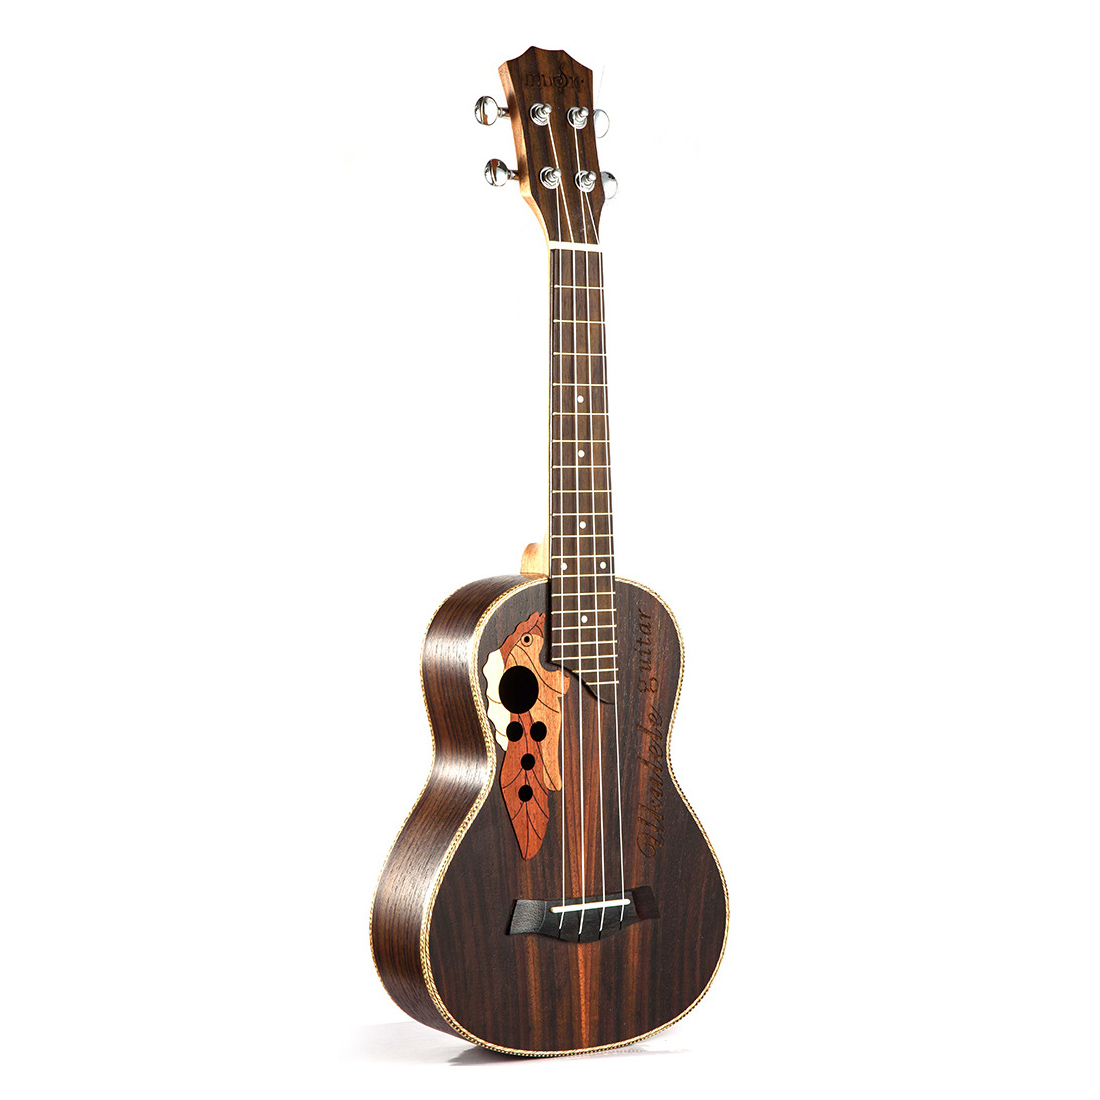 Soprano Concert Ukulele 23 inch rosewood uku Ukelele with 4 String mini Hawaii guitar Musical Instruments zebra 23 inch black rosewood fingerboard concert ukulele sapele hawaii ukelele guitarra bass guitar for musical instruments